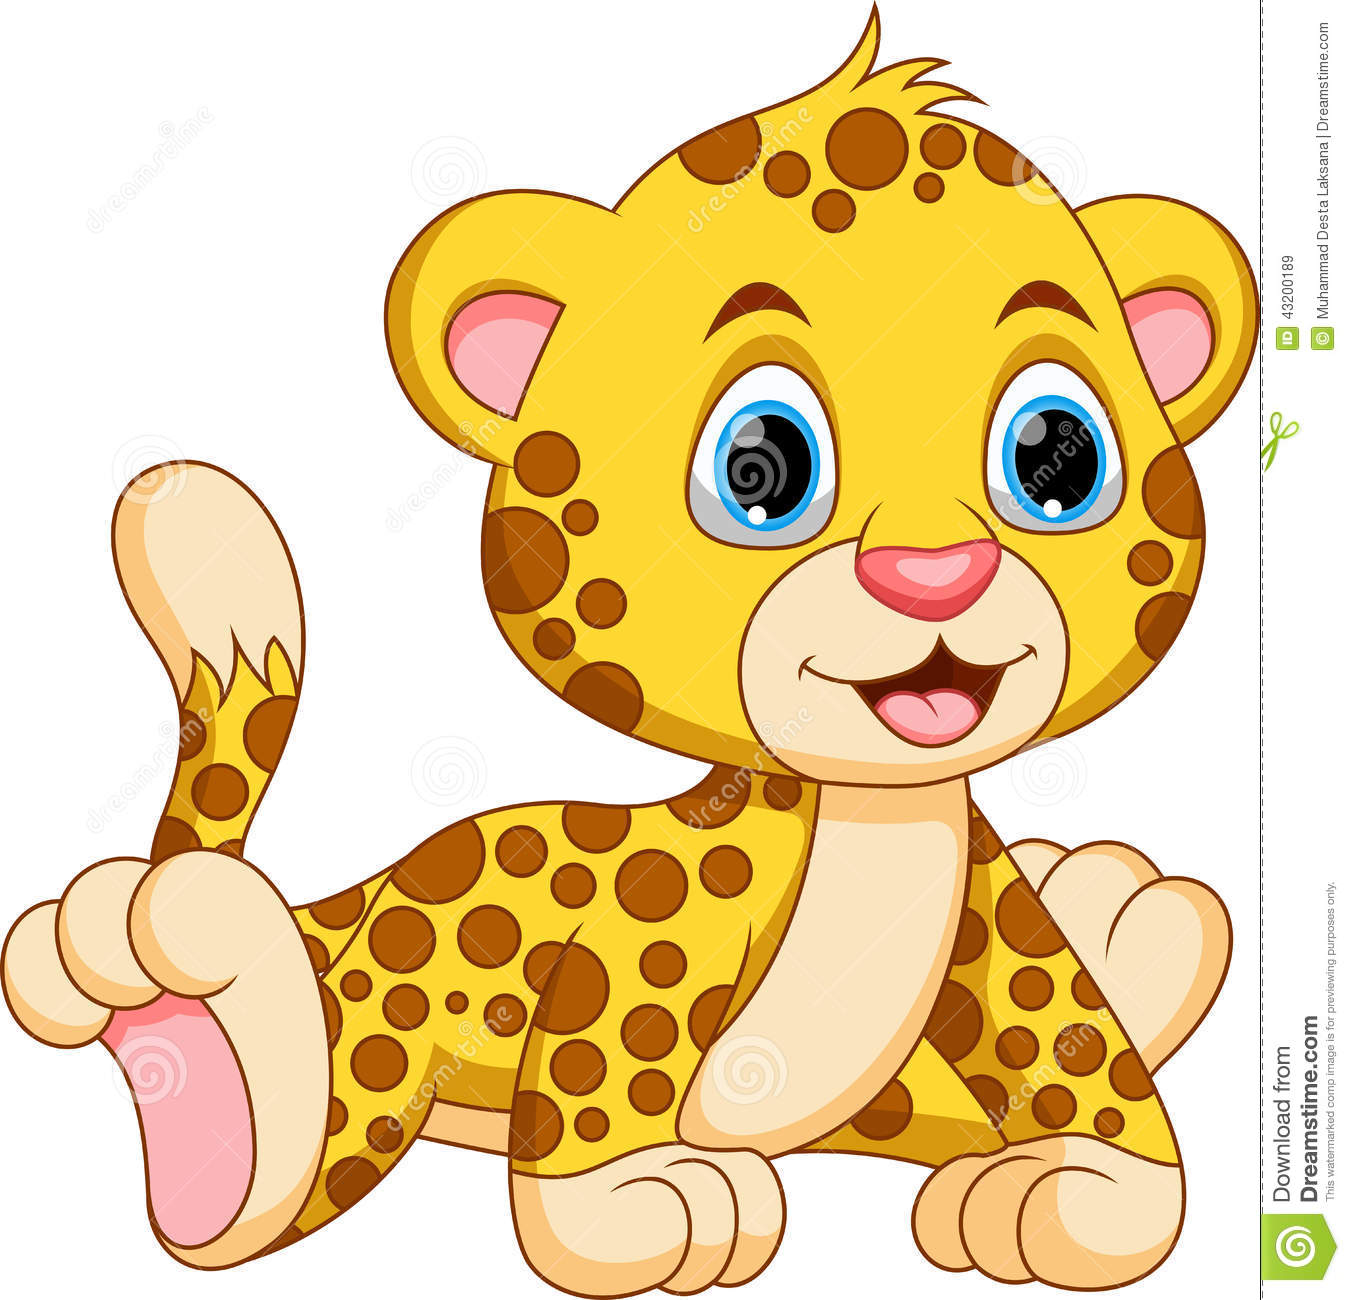 Similiar Clip Art Cheetah Cub Keywords.